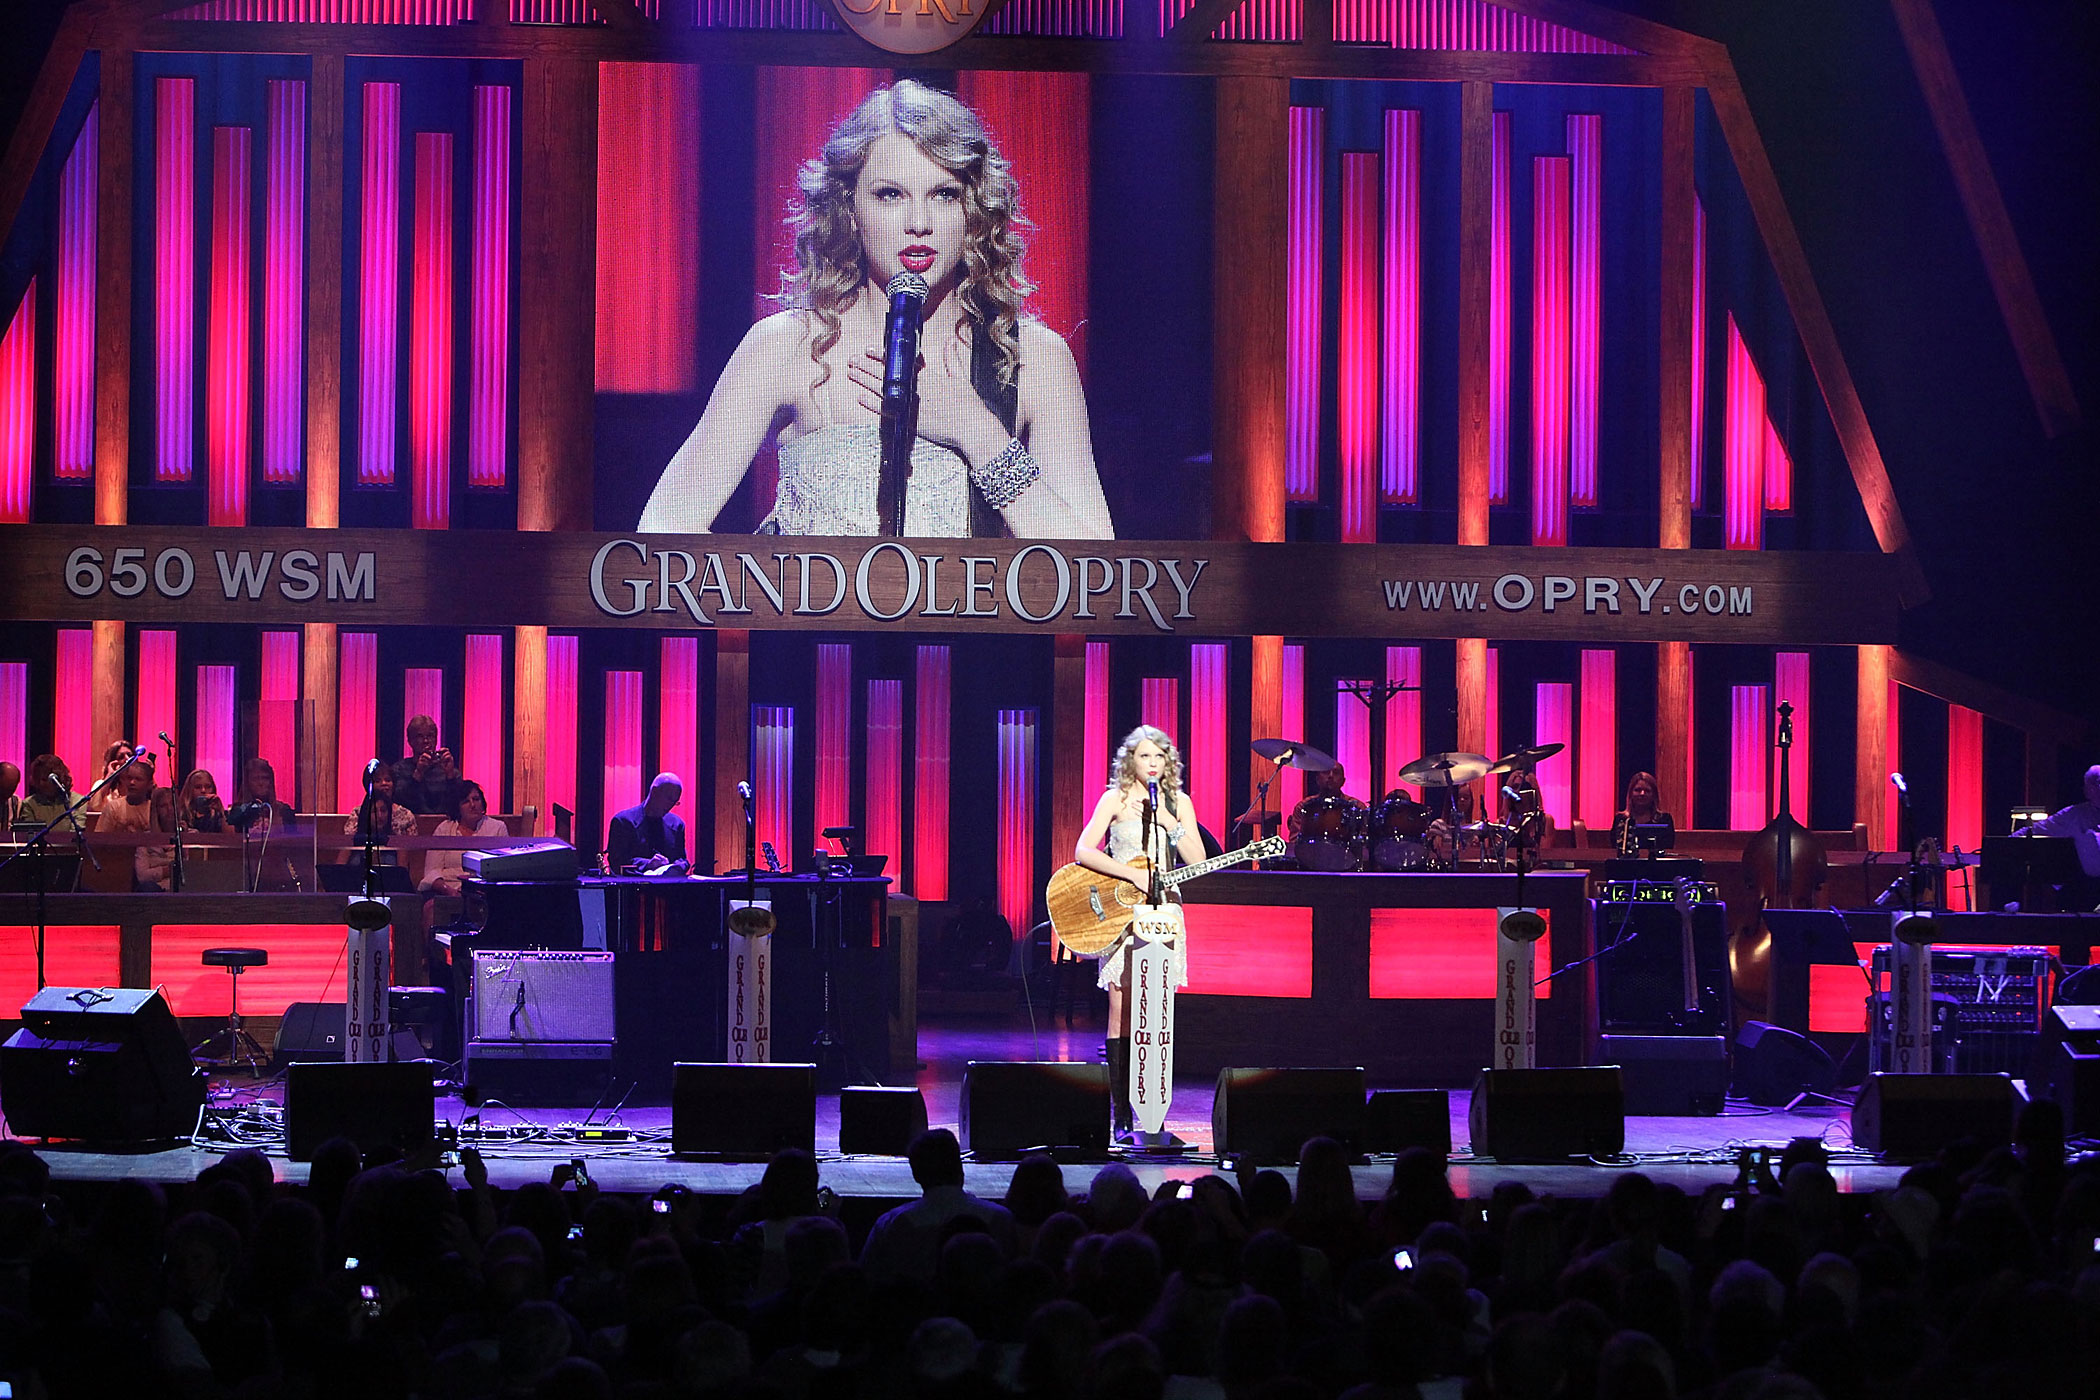 Taylor Swift performs during the Grand Ole Opry 85th birthday bash at the Grand Ole Opry House in Nashville, Tennessee in 2010.